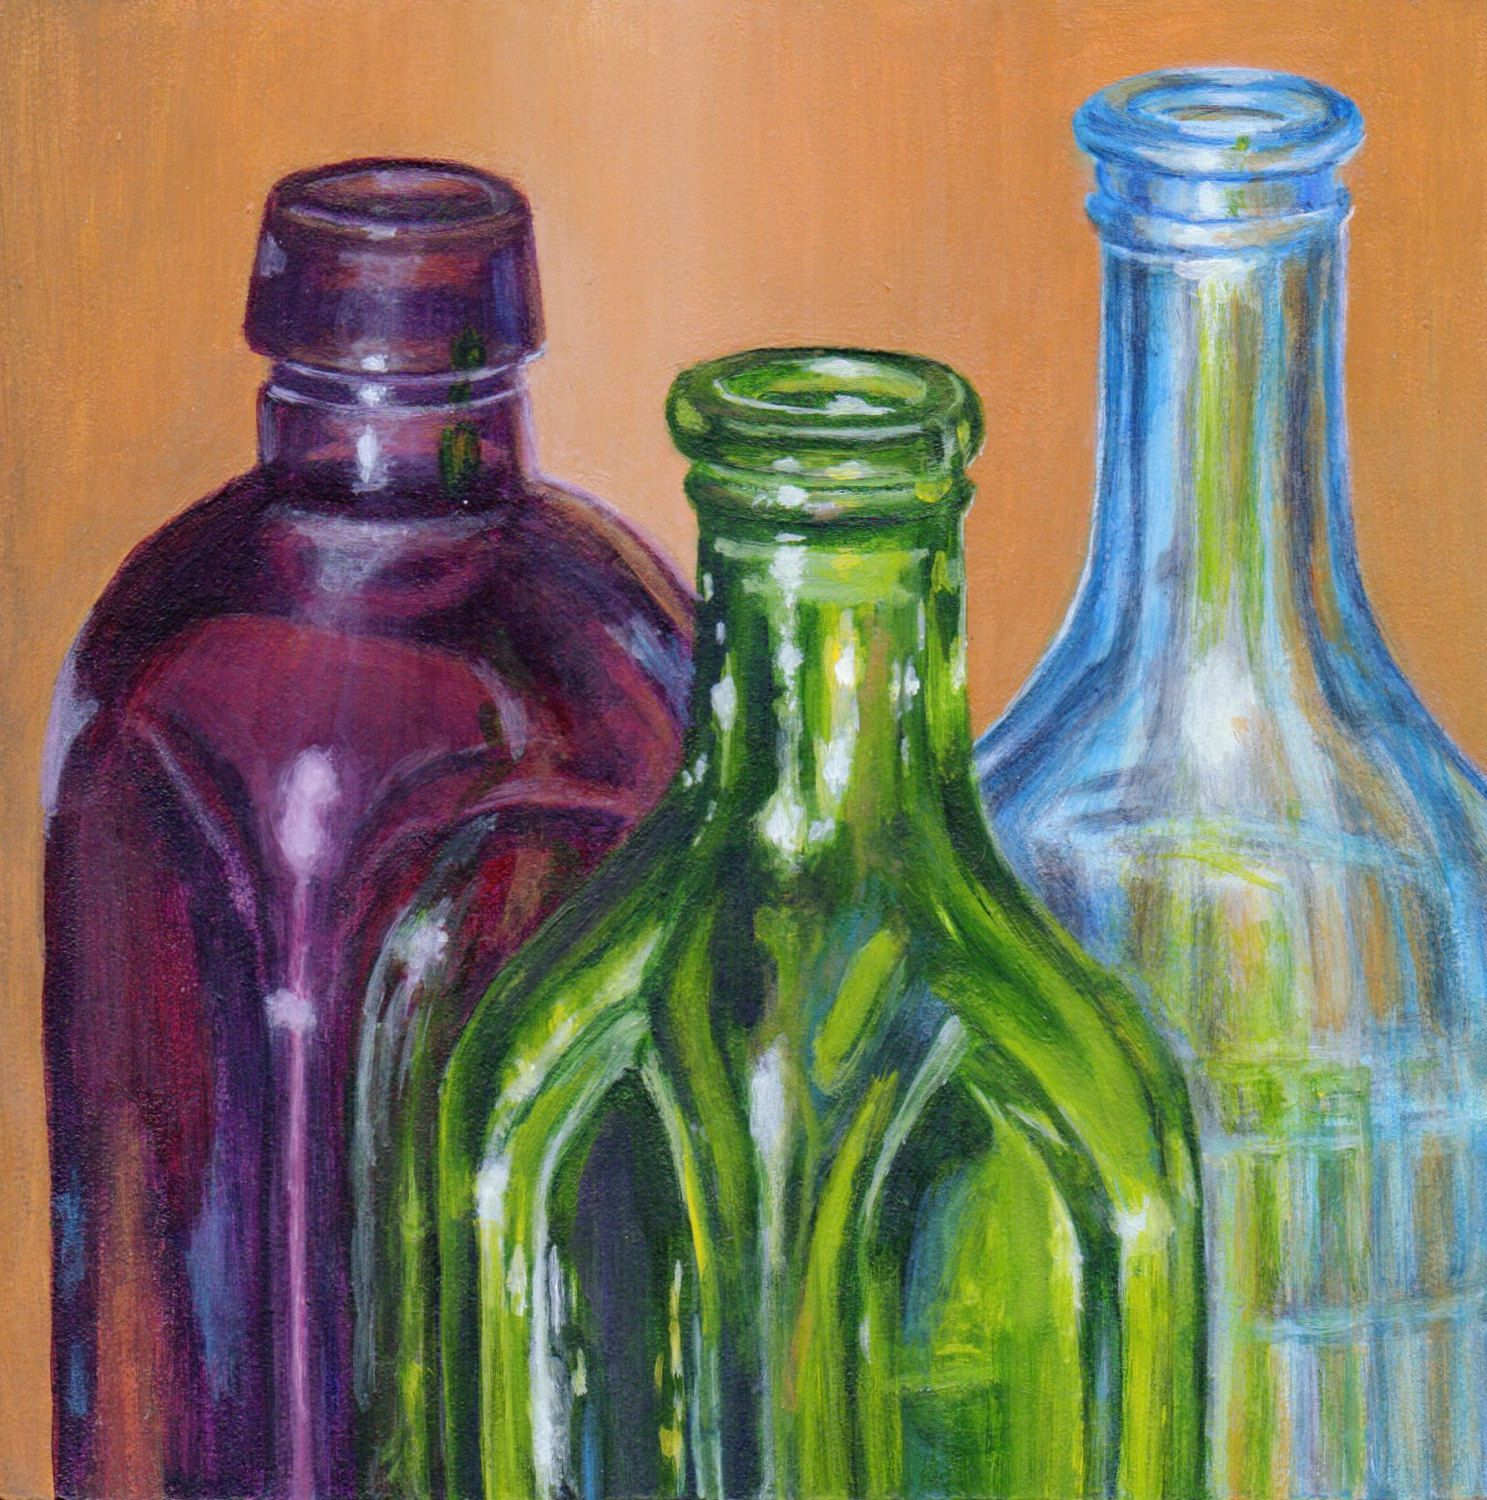 Acrylic Still Life Painting of Bottles - Original Small Painting ...